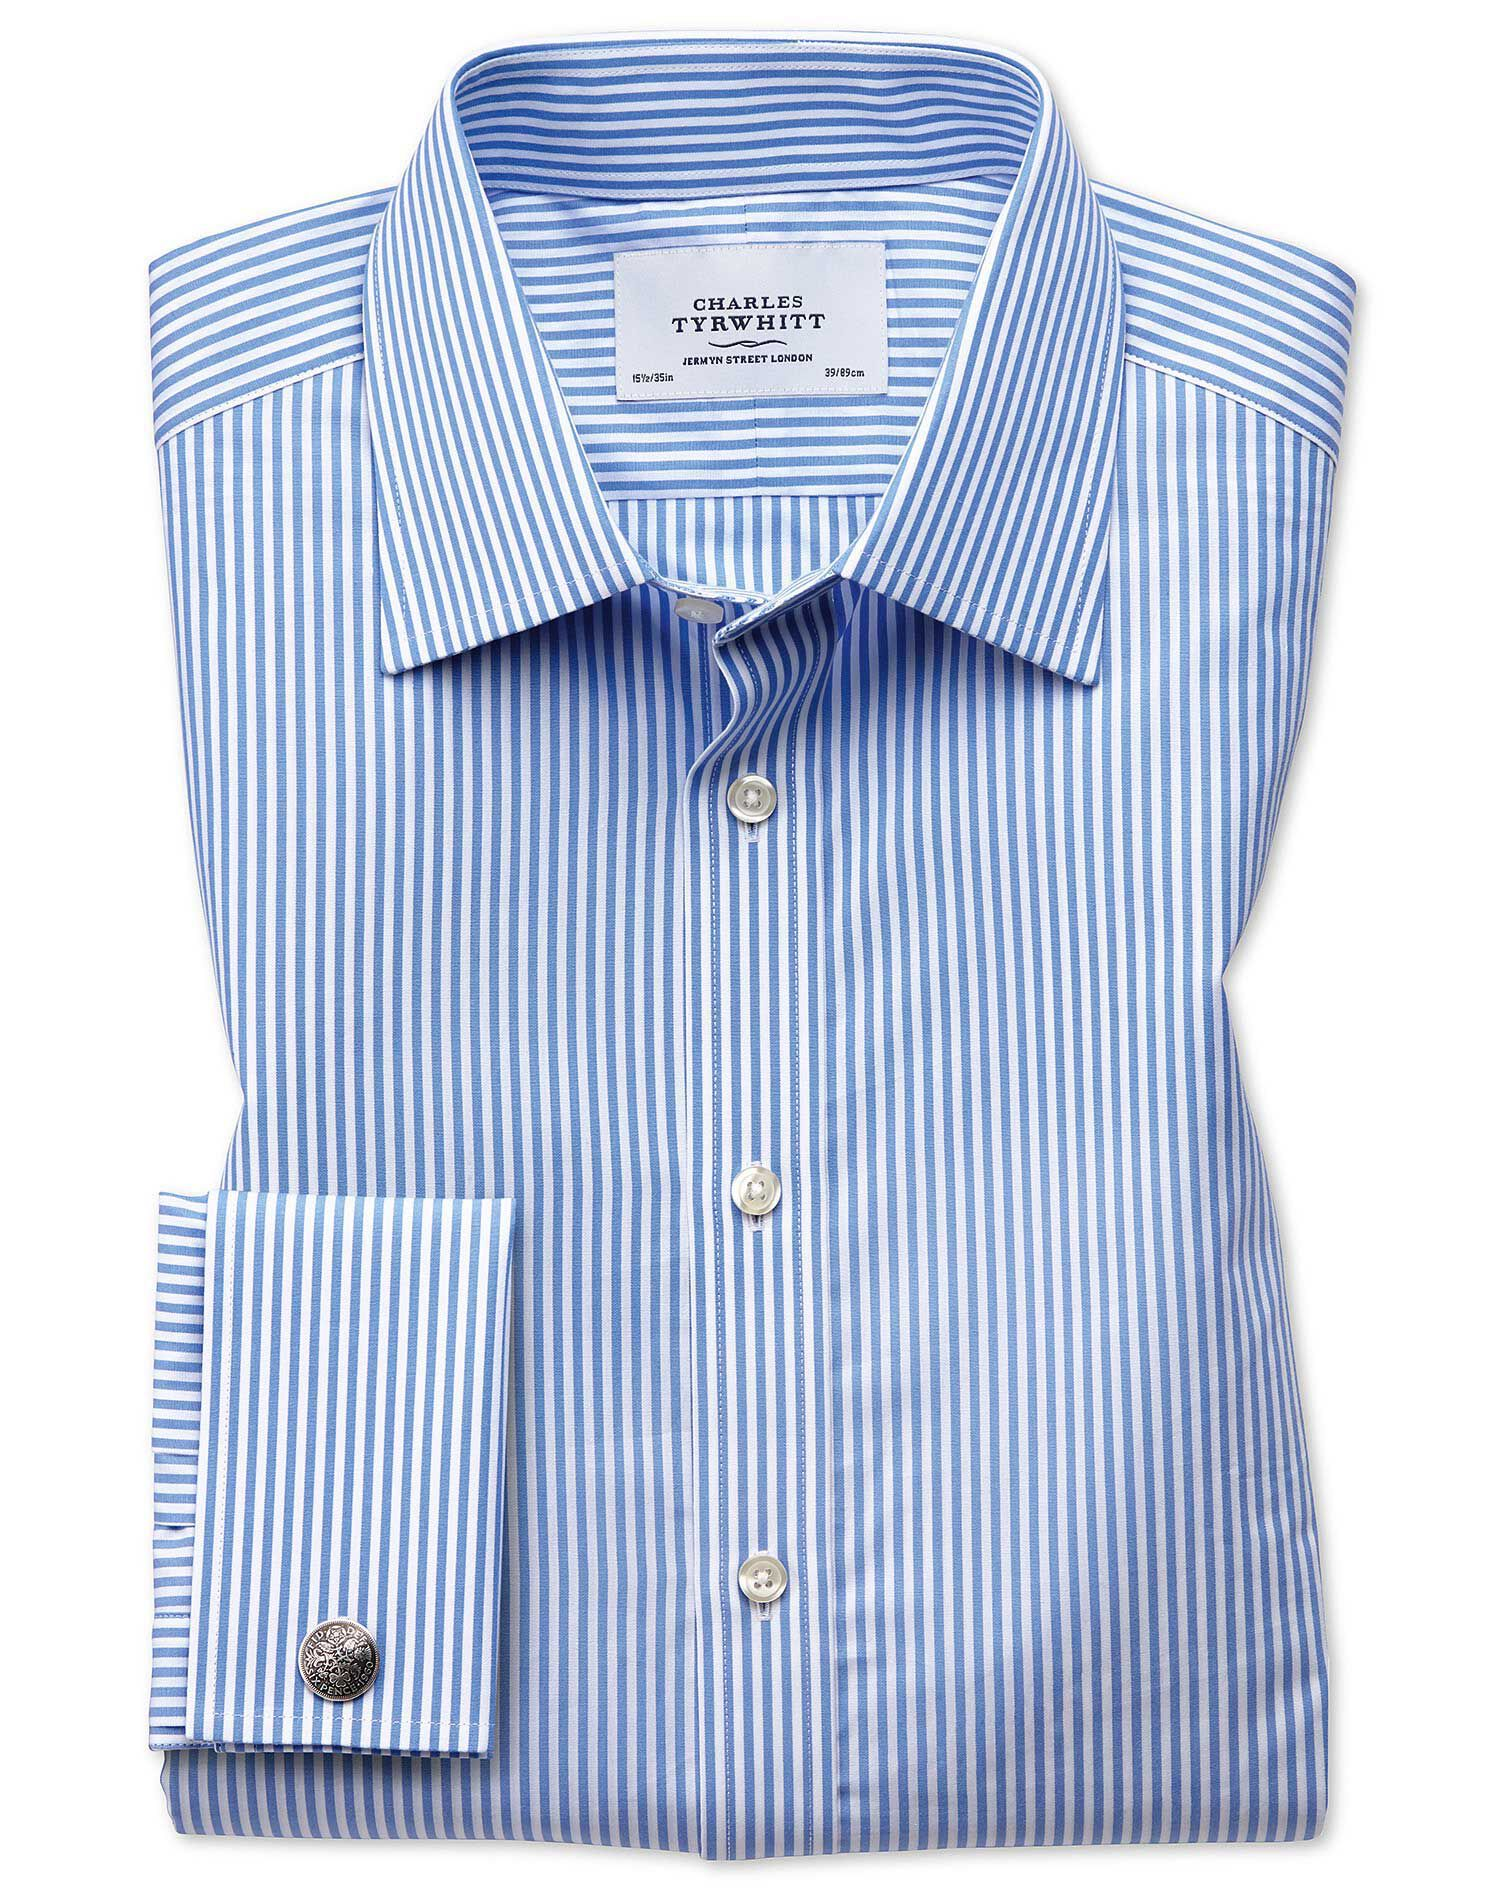 Classic Fit Bengal Stripe Sky Blue Cotton Formal Shirt Double Cuff Size 15.5/34 by Charles Tyrwhitt